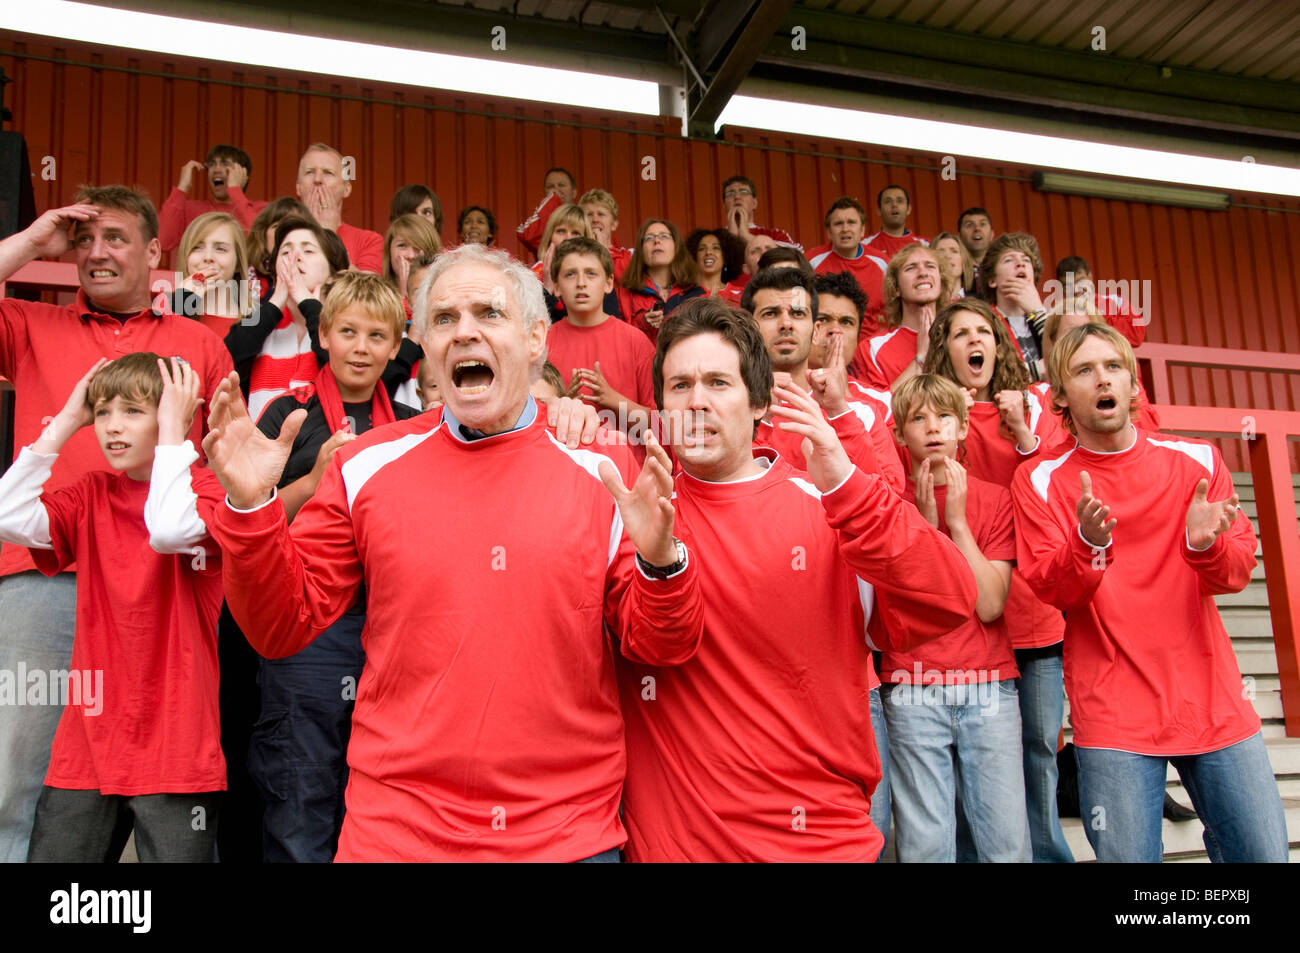 Group of frustrated football supporters - Stock Image